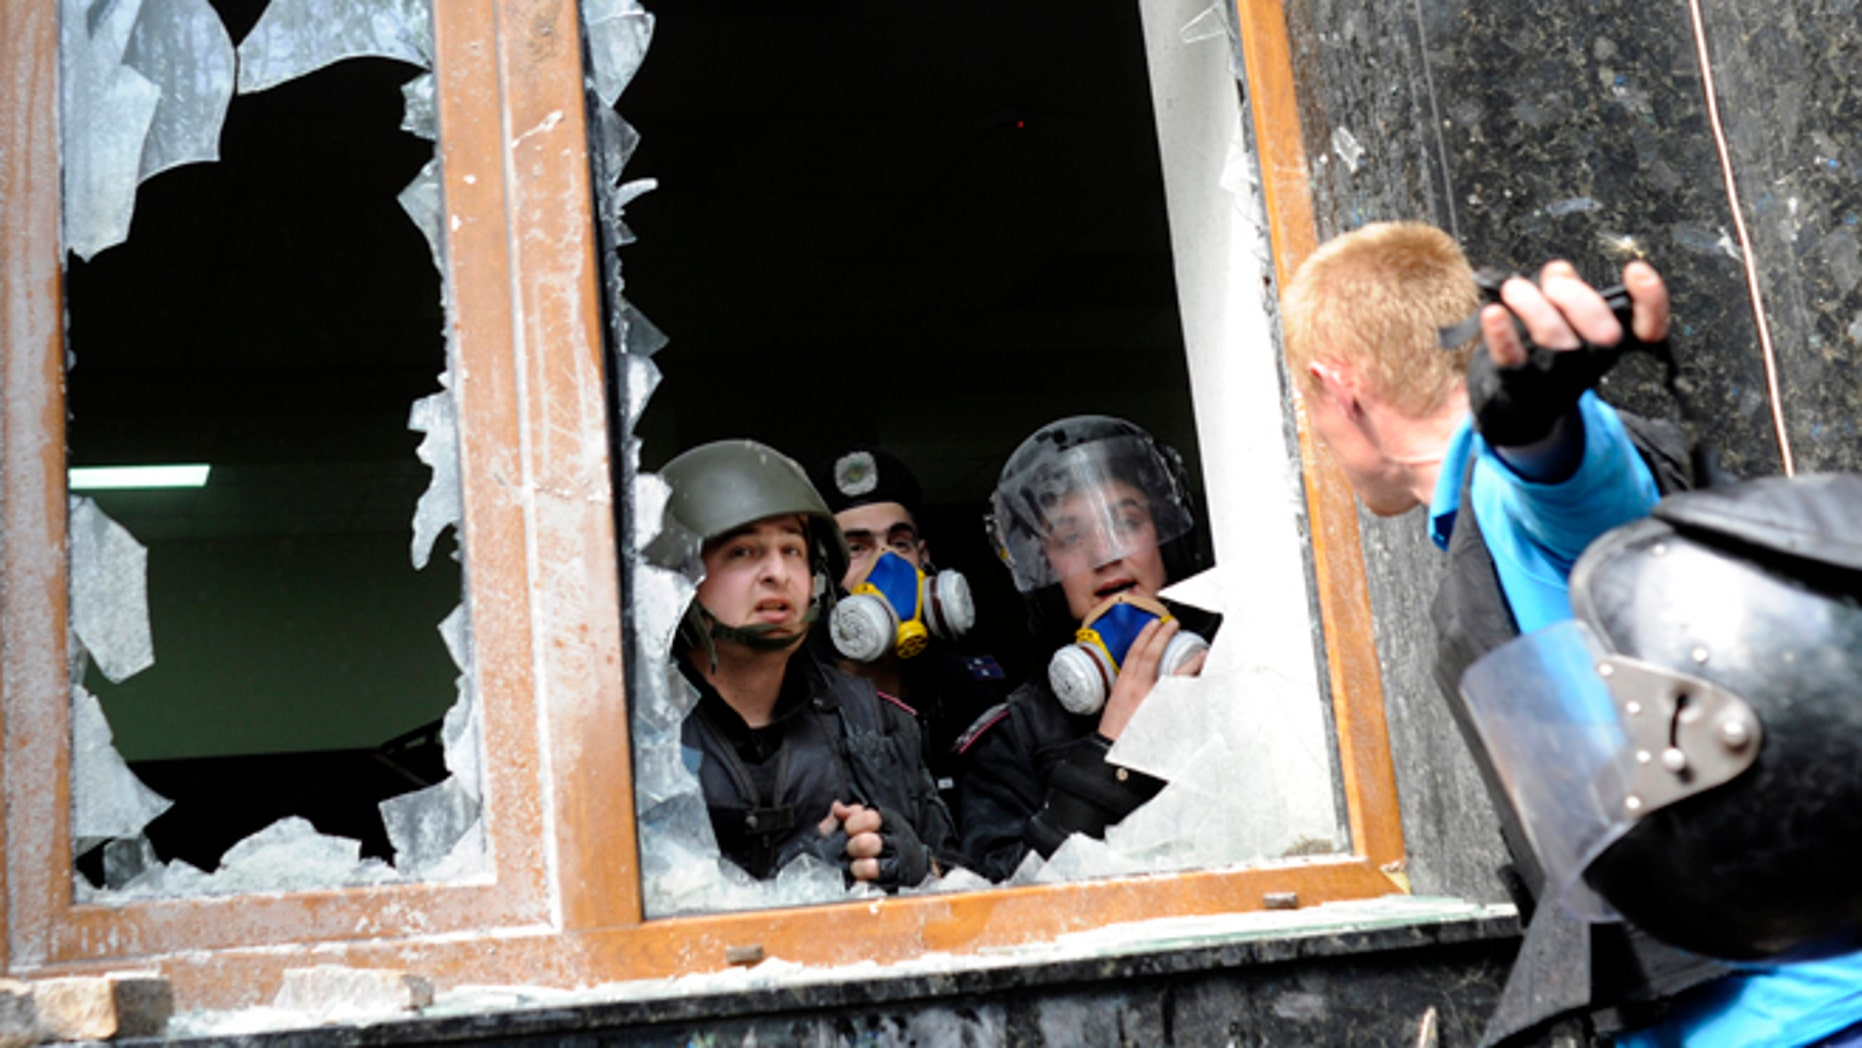 May 1, 2014: A Pro-Russian activist, right, speaks with police officers during clashes in front of the regional administration building in Donetsk, Ukraine. Anti-government demonstrators in Donetsk have stormed the local prosecutor's office. The clash came after a march by several hundred people carrying flags of the Donetsk People's Republic, a movement that seeks either greater autonomy from the central government, or independence and possible annexation by Russia.